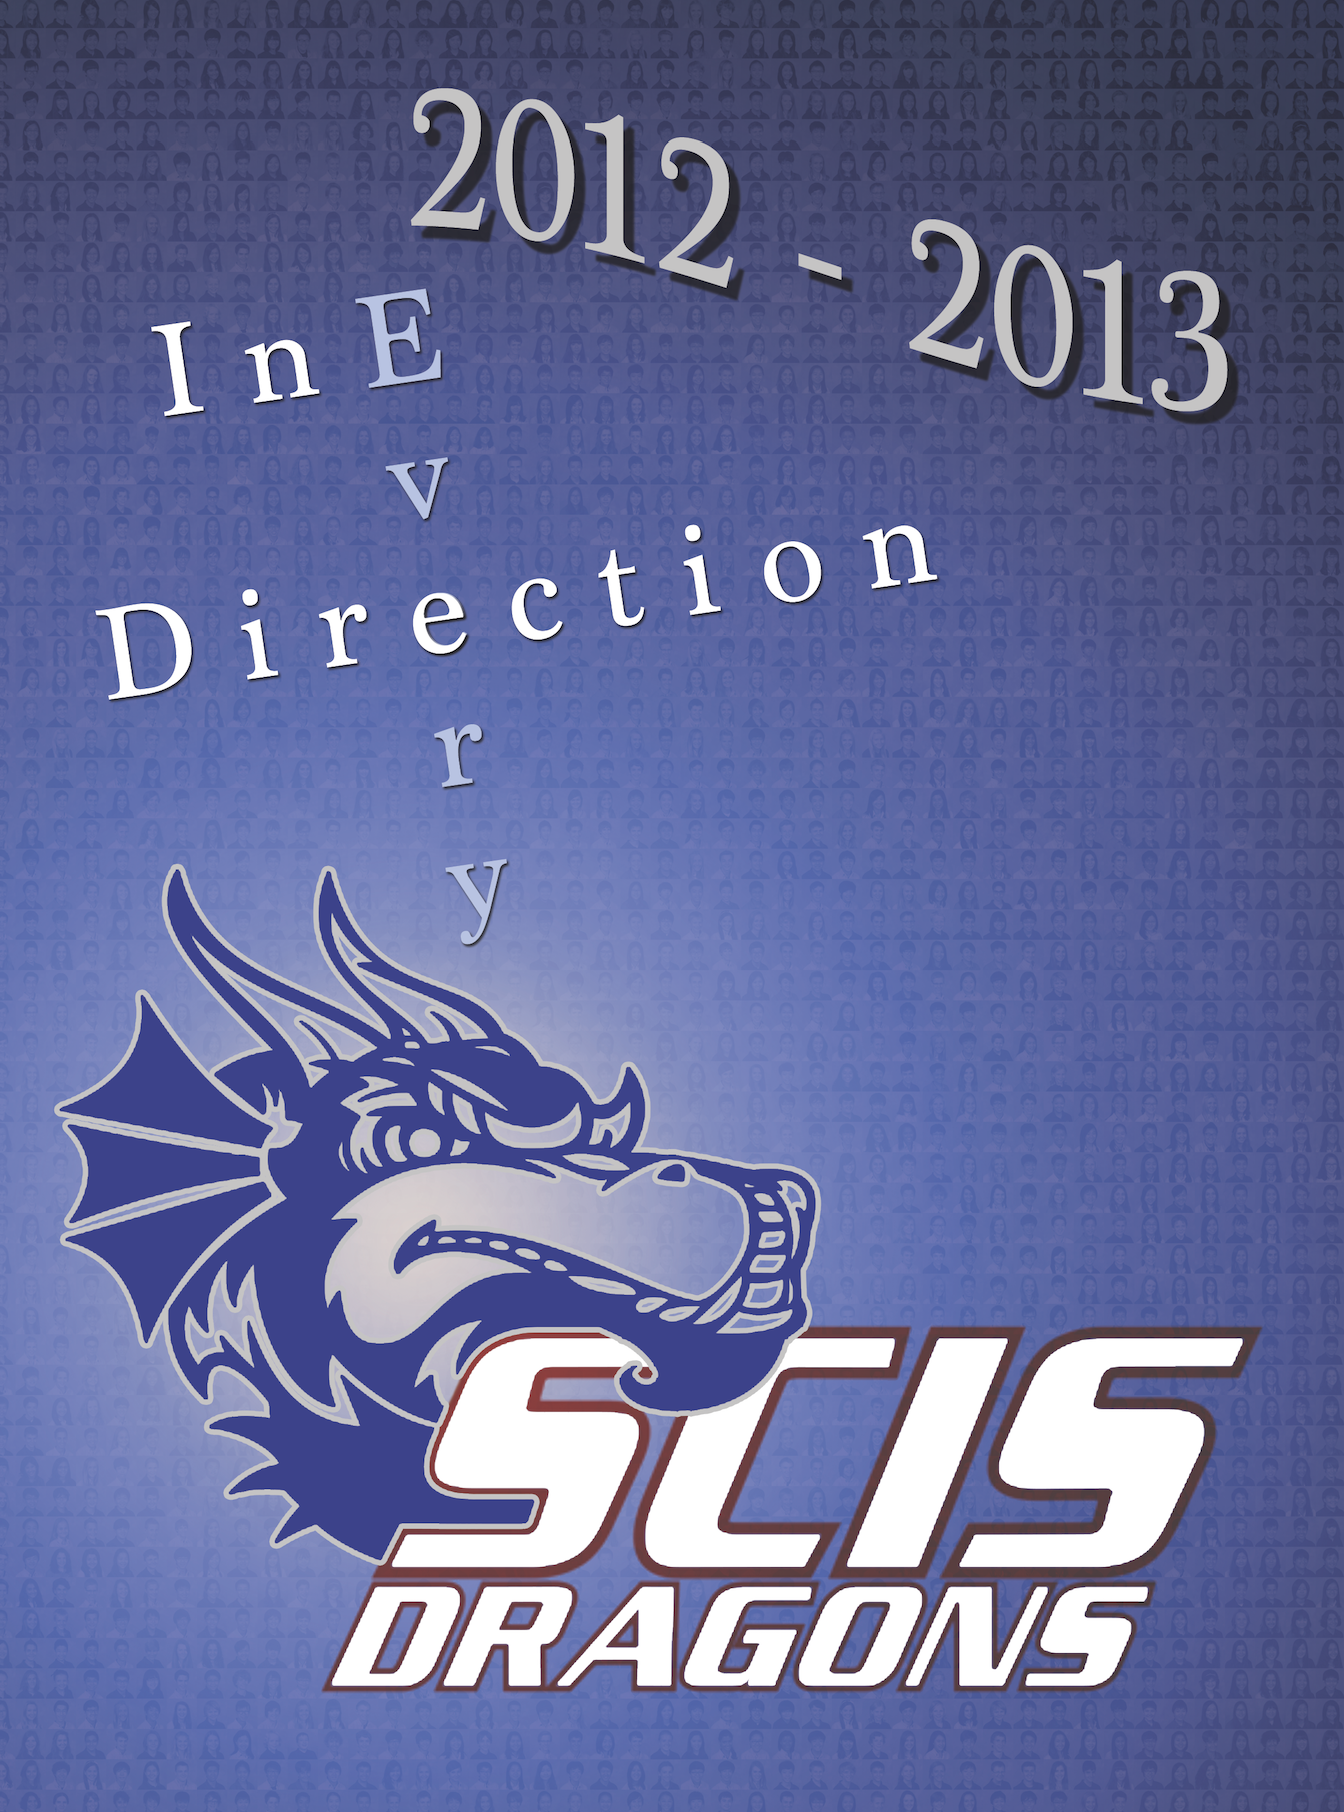 SCIS-HQ Yearbook Cover 2013